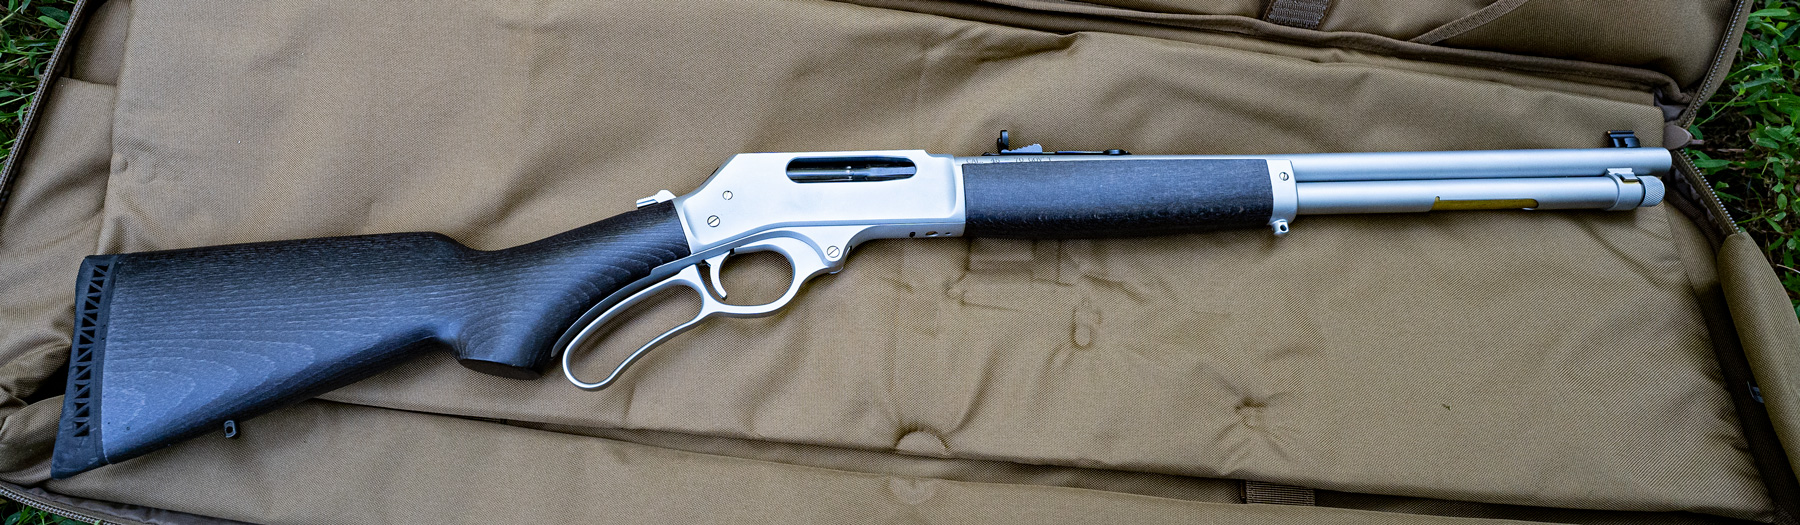 A lever action long gun made by Henry